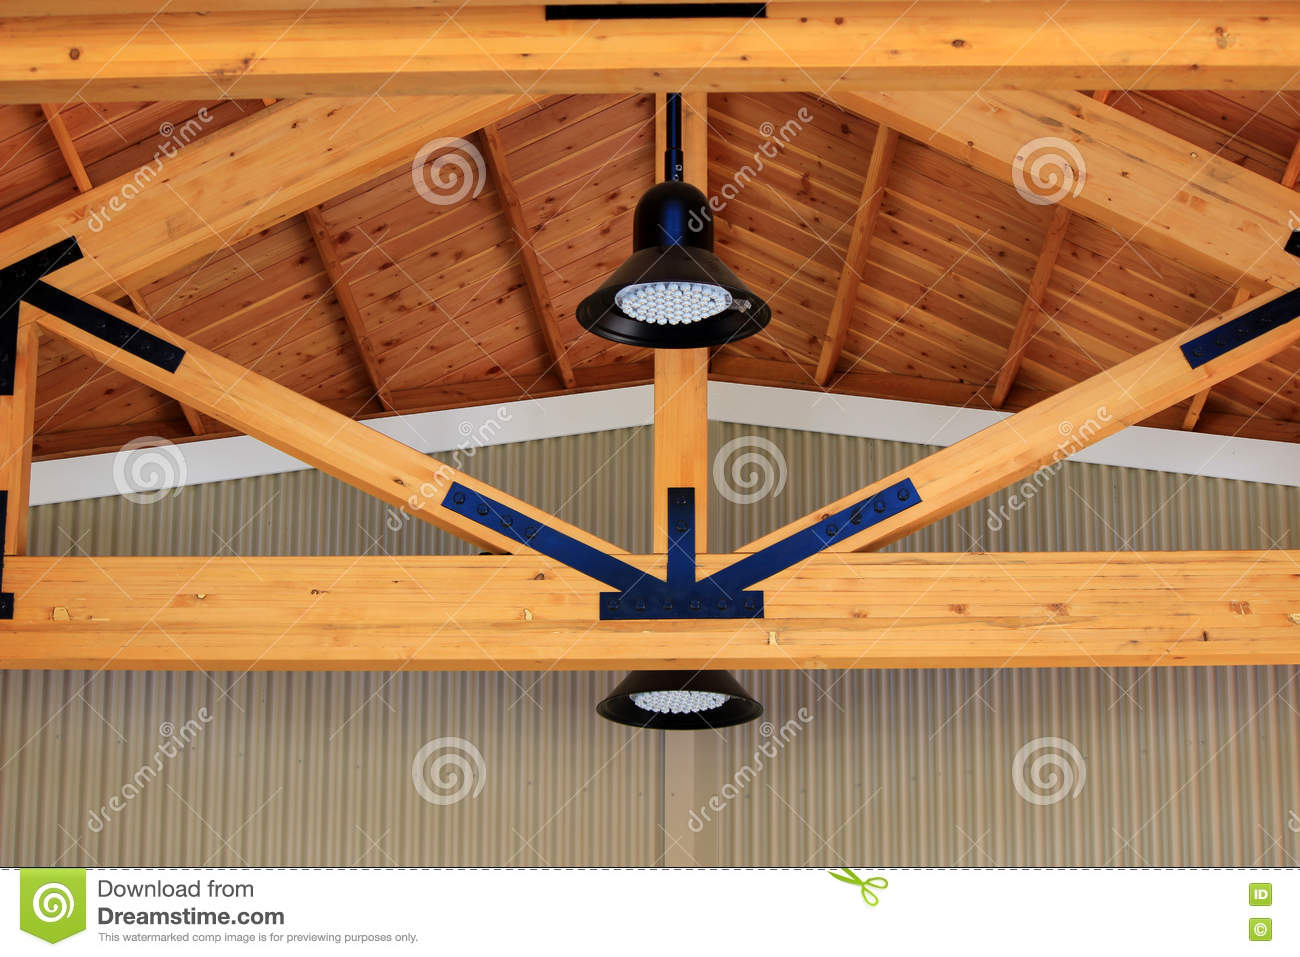 Stained Wood Building Truss Stock Photo - Image of wood